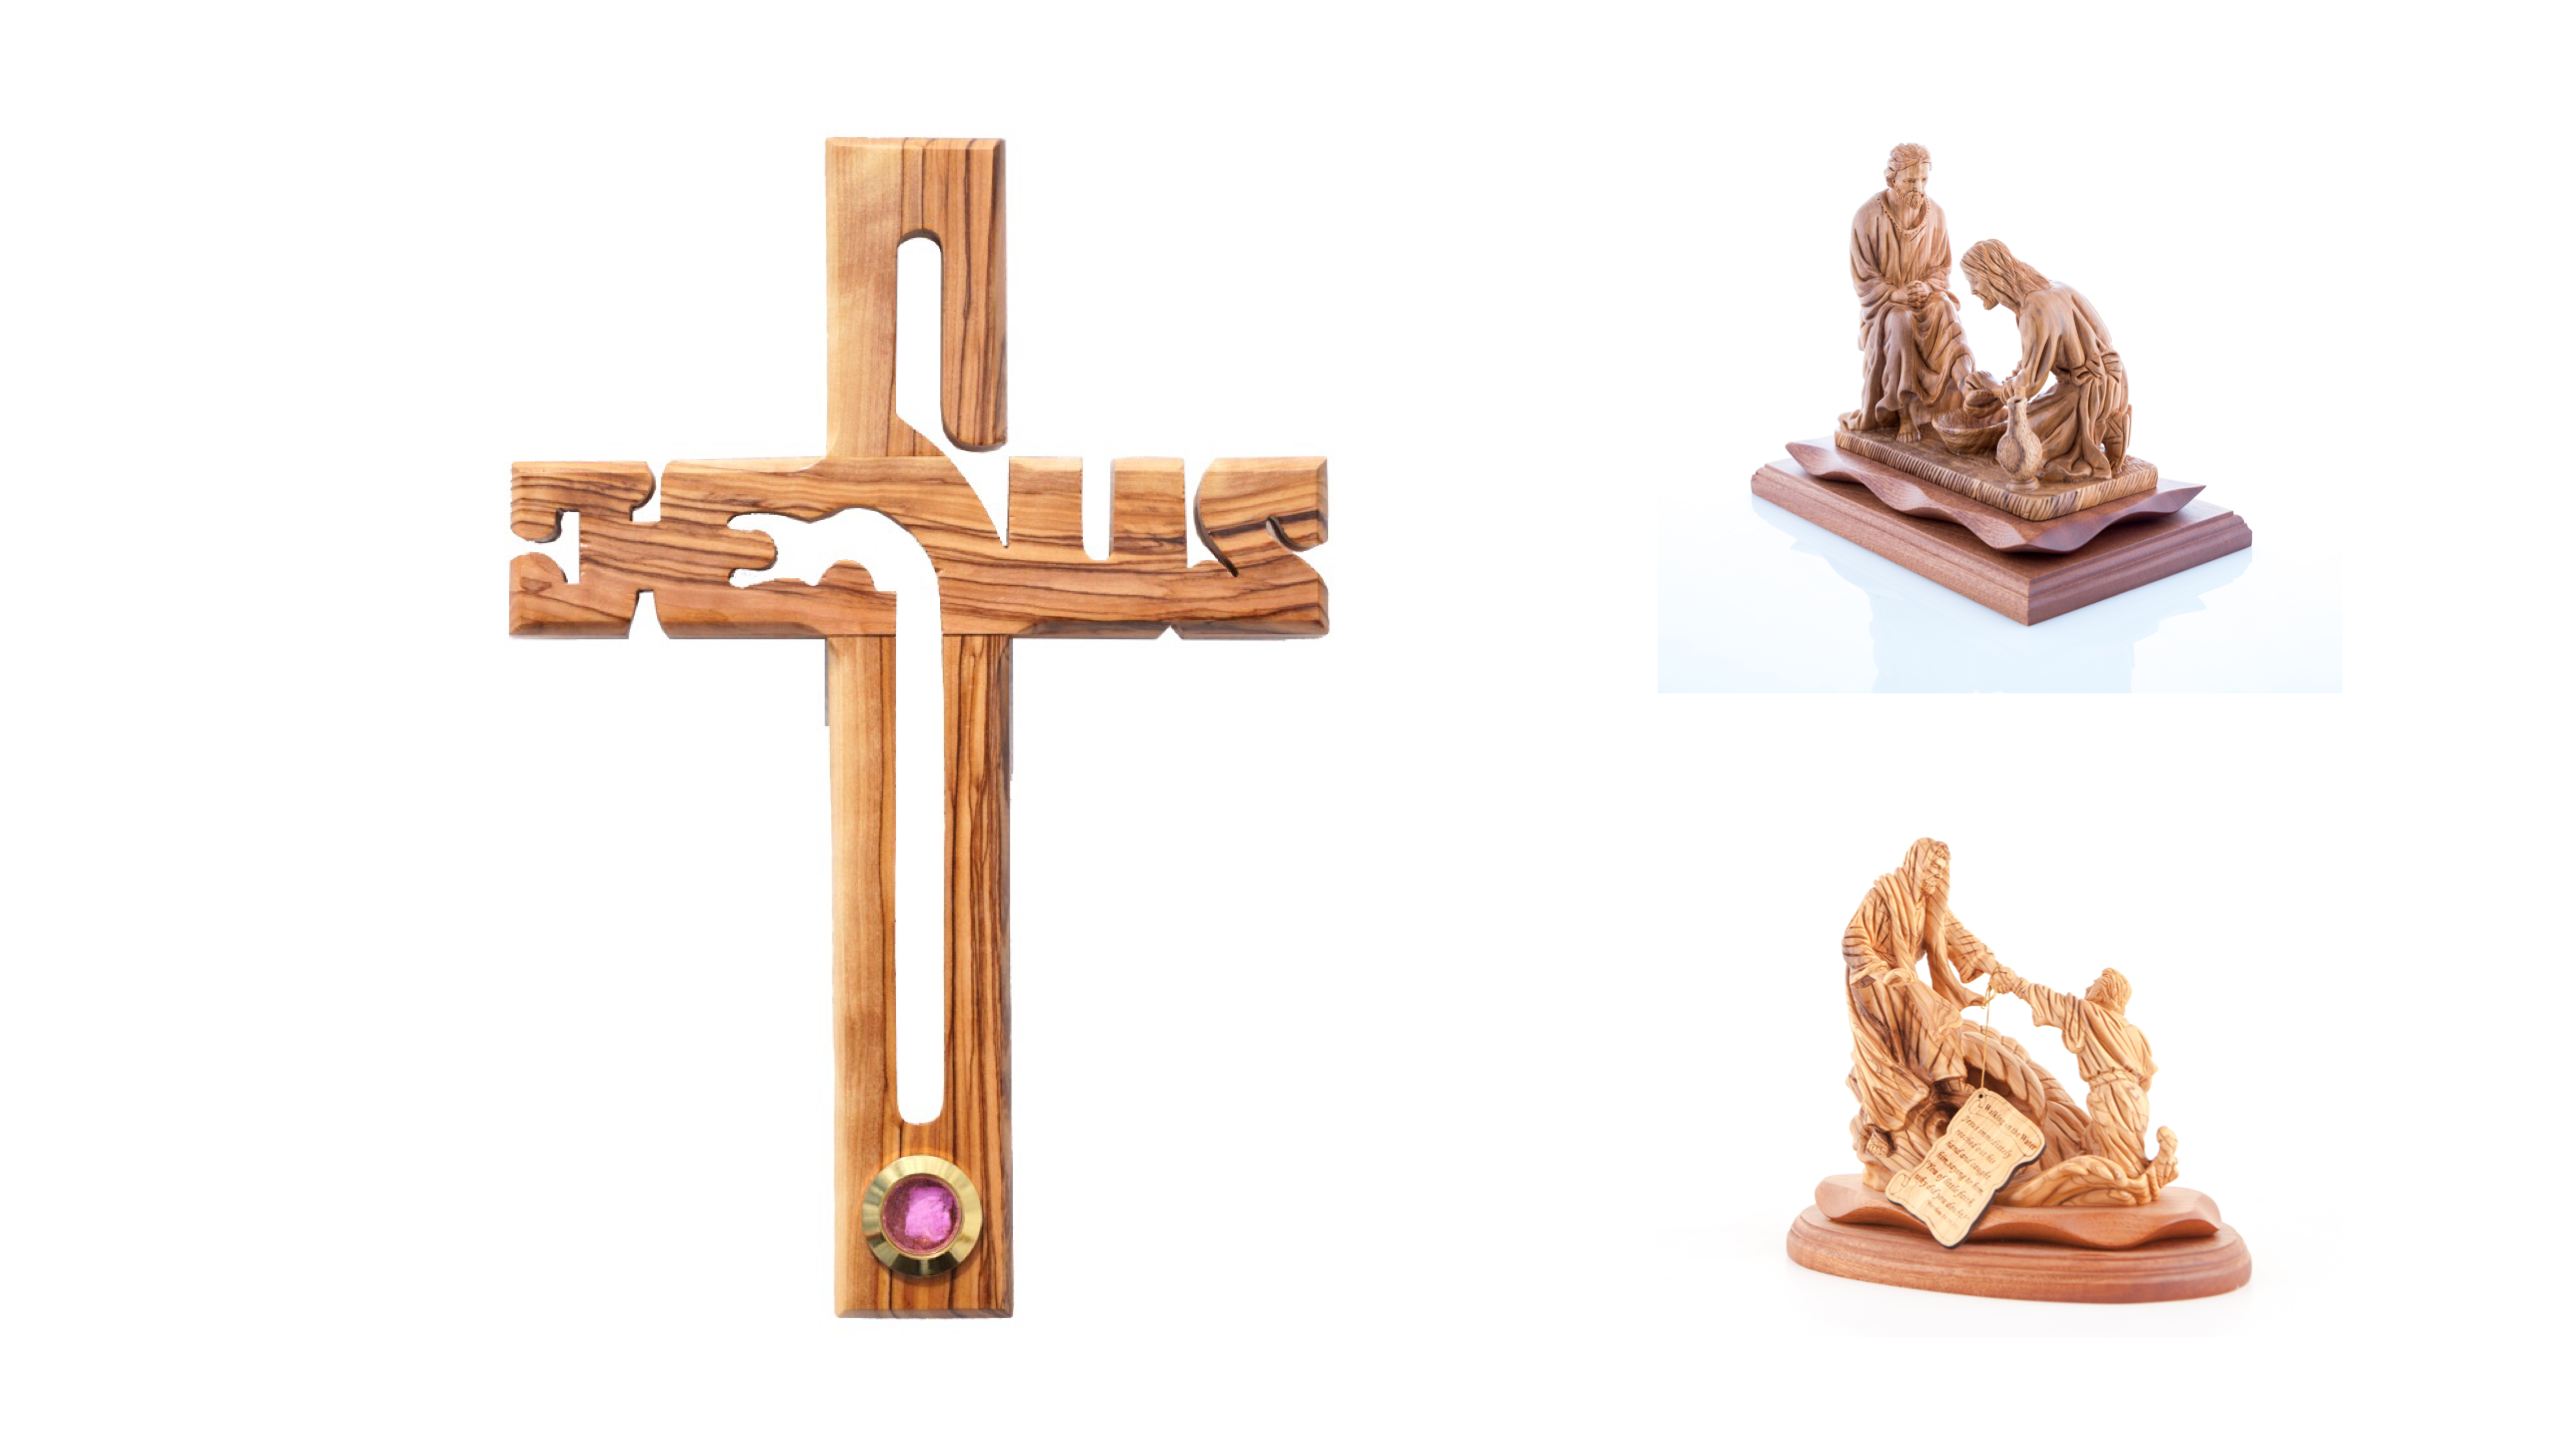 https://bethlehemhandicrafts.com/collections/hand-carved-jesus-statuettes